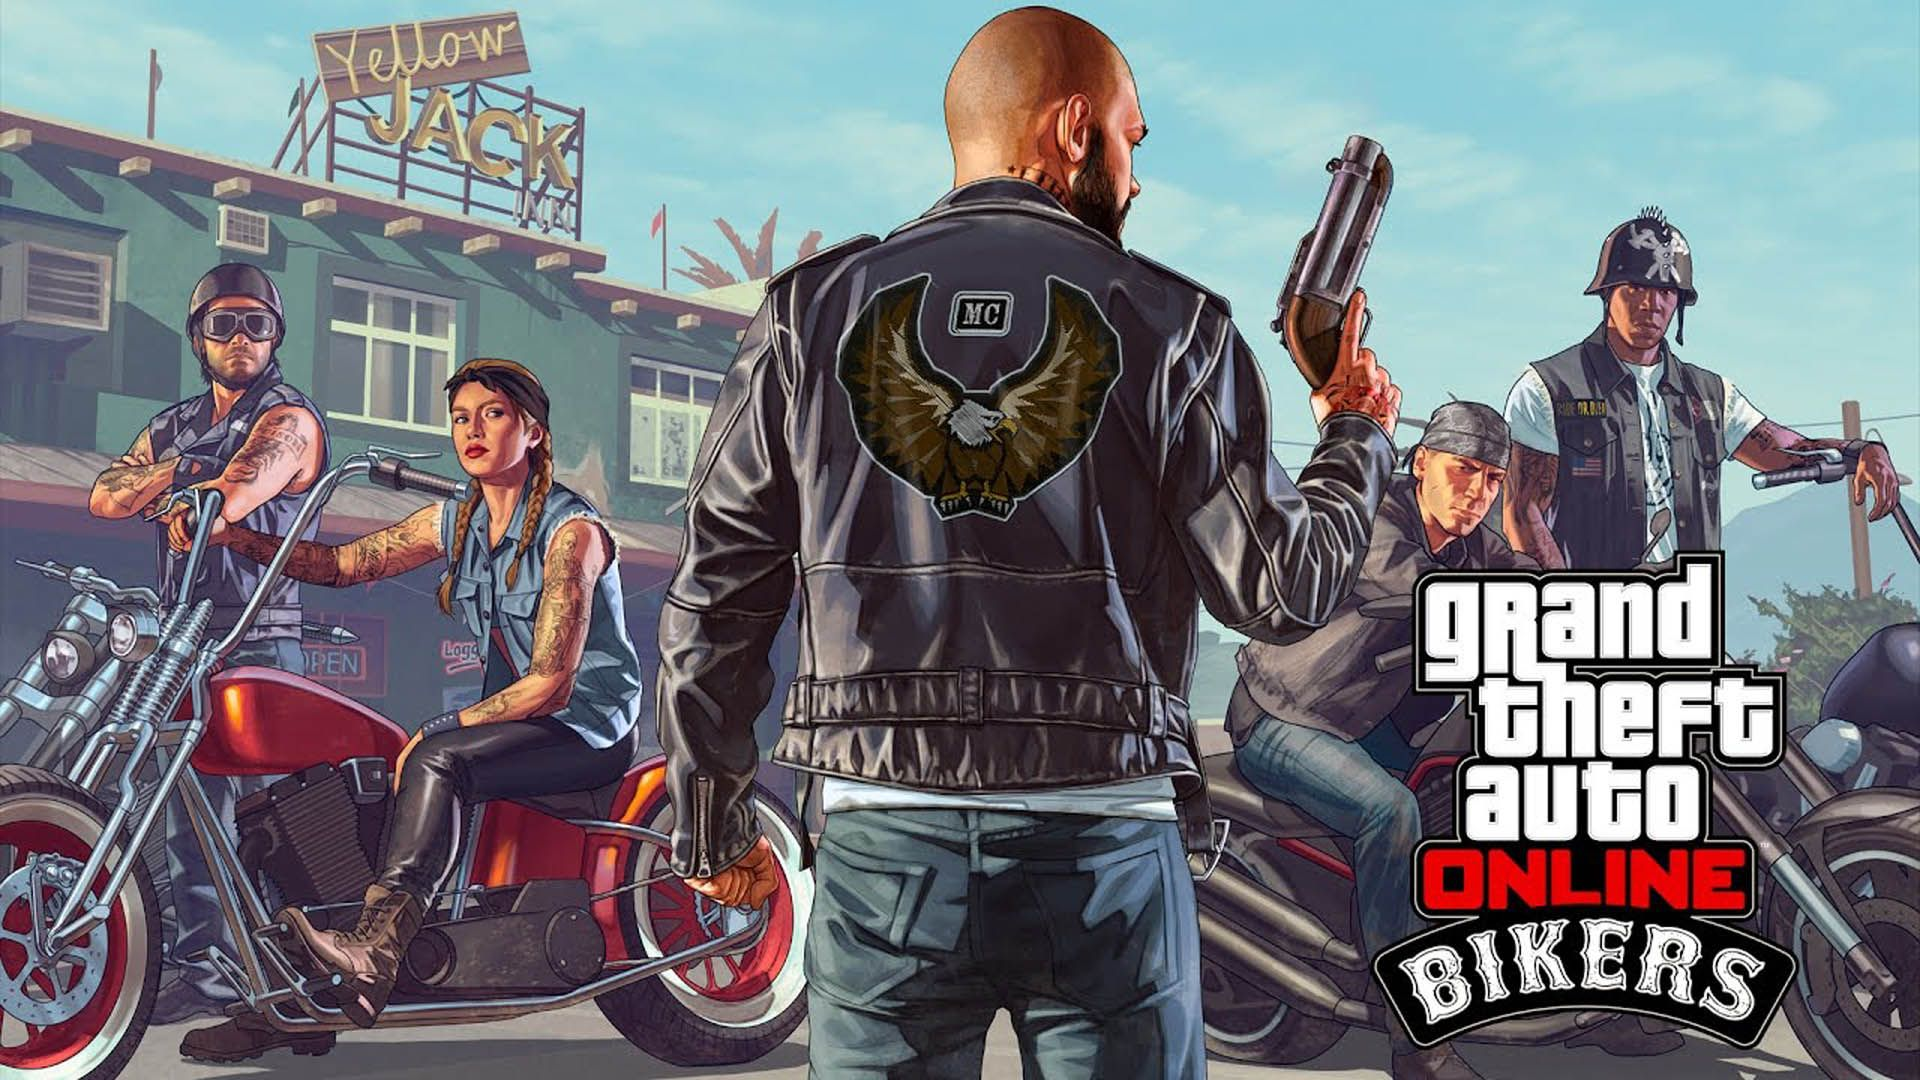 Bikers Gta 5 Online Update Dlc 1920x1080 Wallpaper Boy